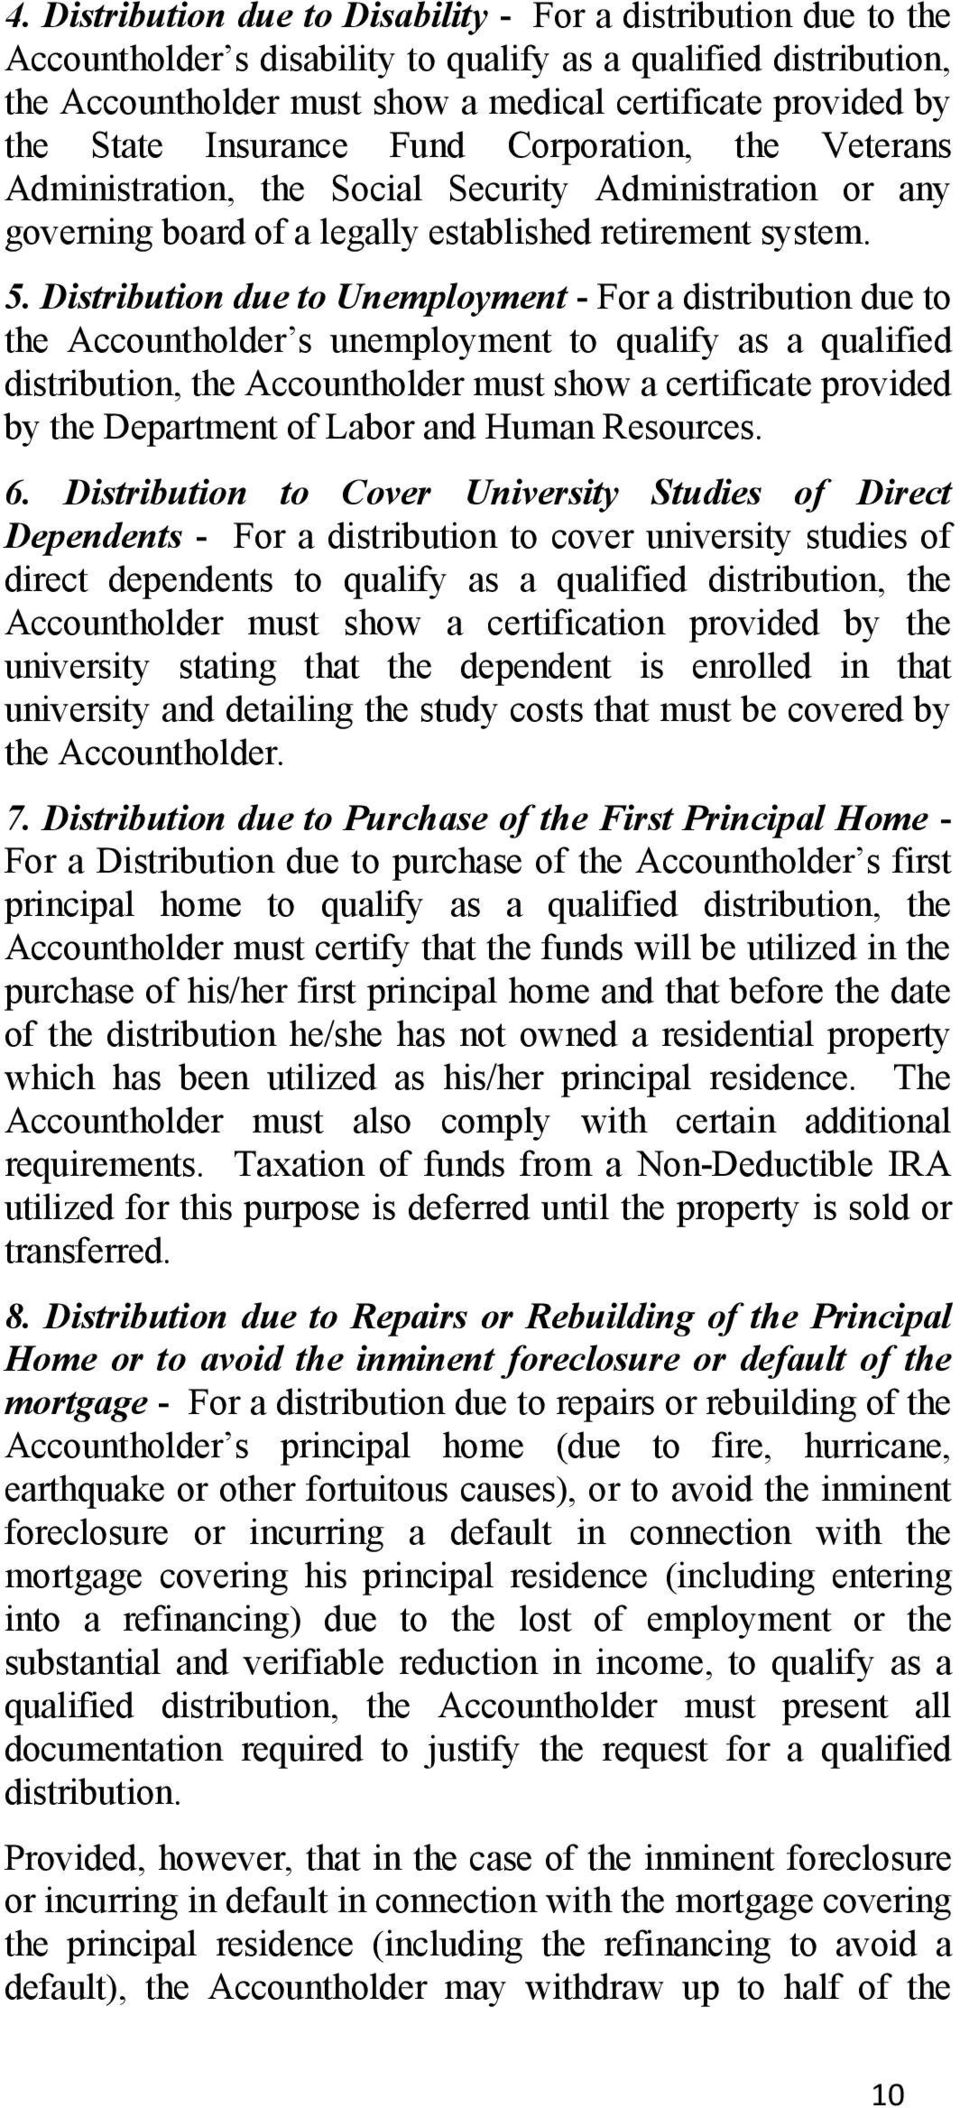 Distribution due to Unemployment - For a distribution due to the Accountholder s unemployment to qualify as a qualified distribution, the Accountholder must show a certificate provided by the